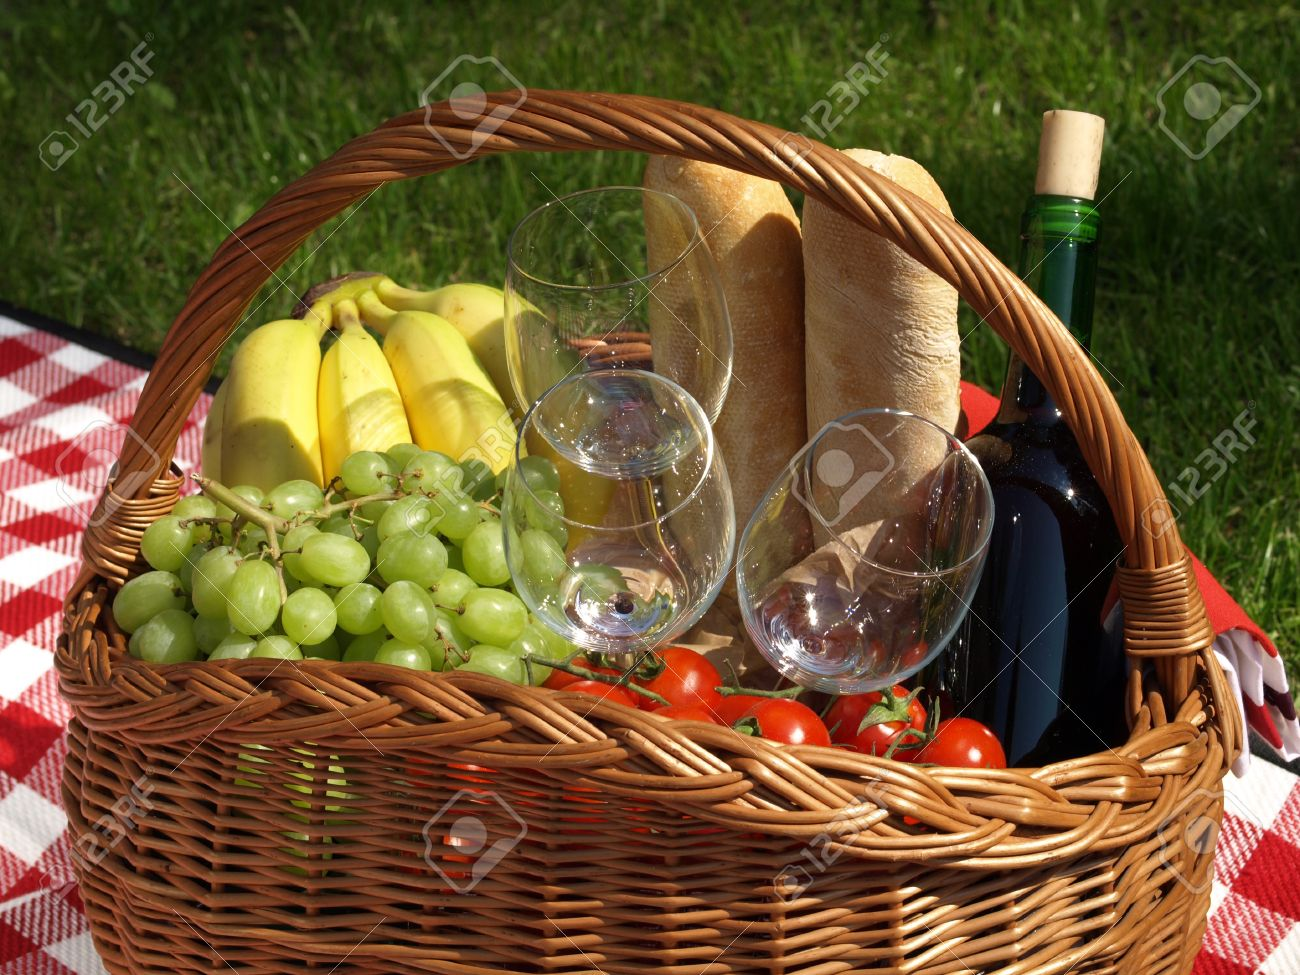 Picnic prepared for eating in the garden Stock Photo - 14327033